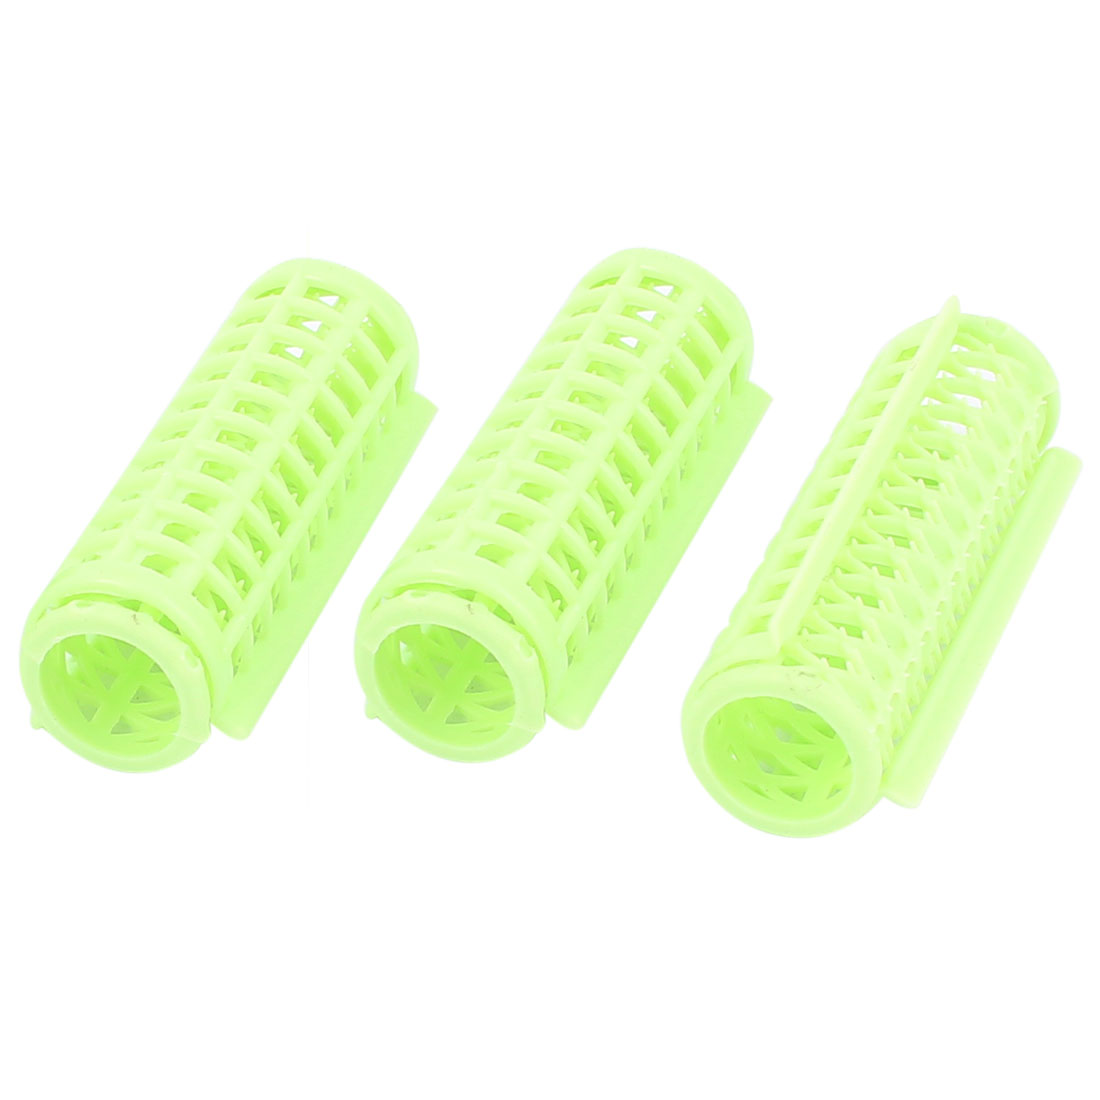 Plastic Green DIY Hair Styling Roller Curlers Clips 3pcs